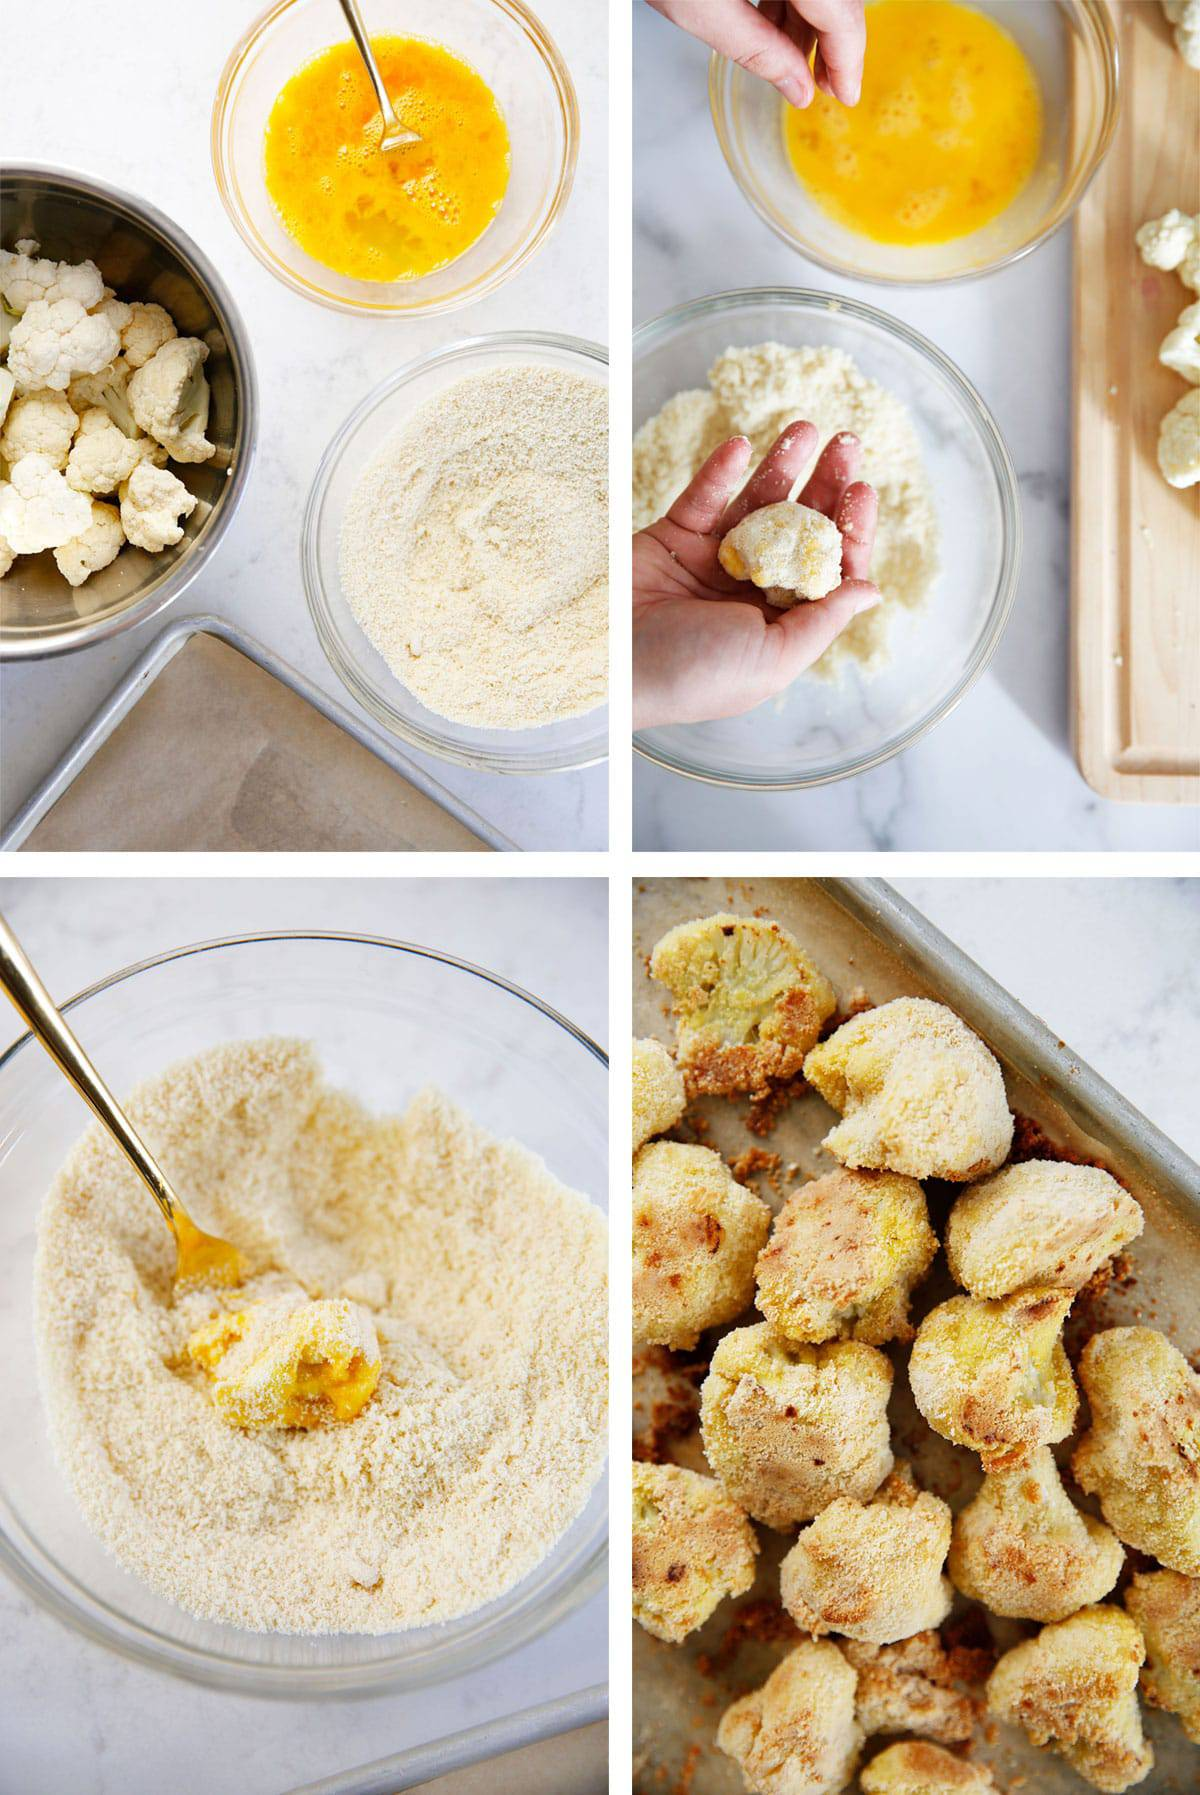 Steps for making cauliflower wings.